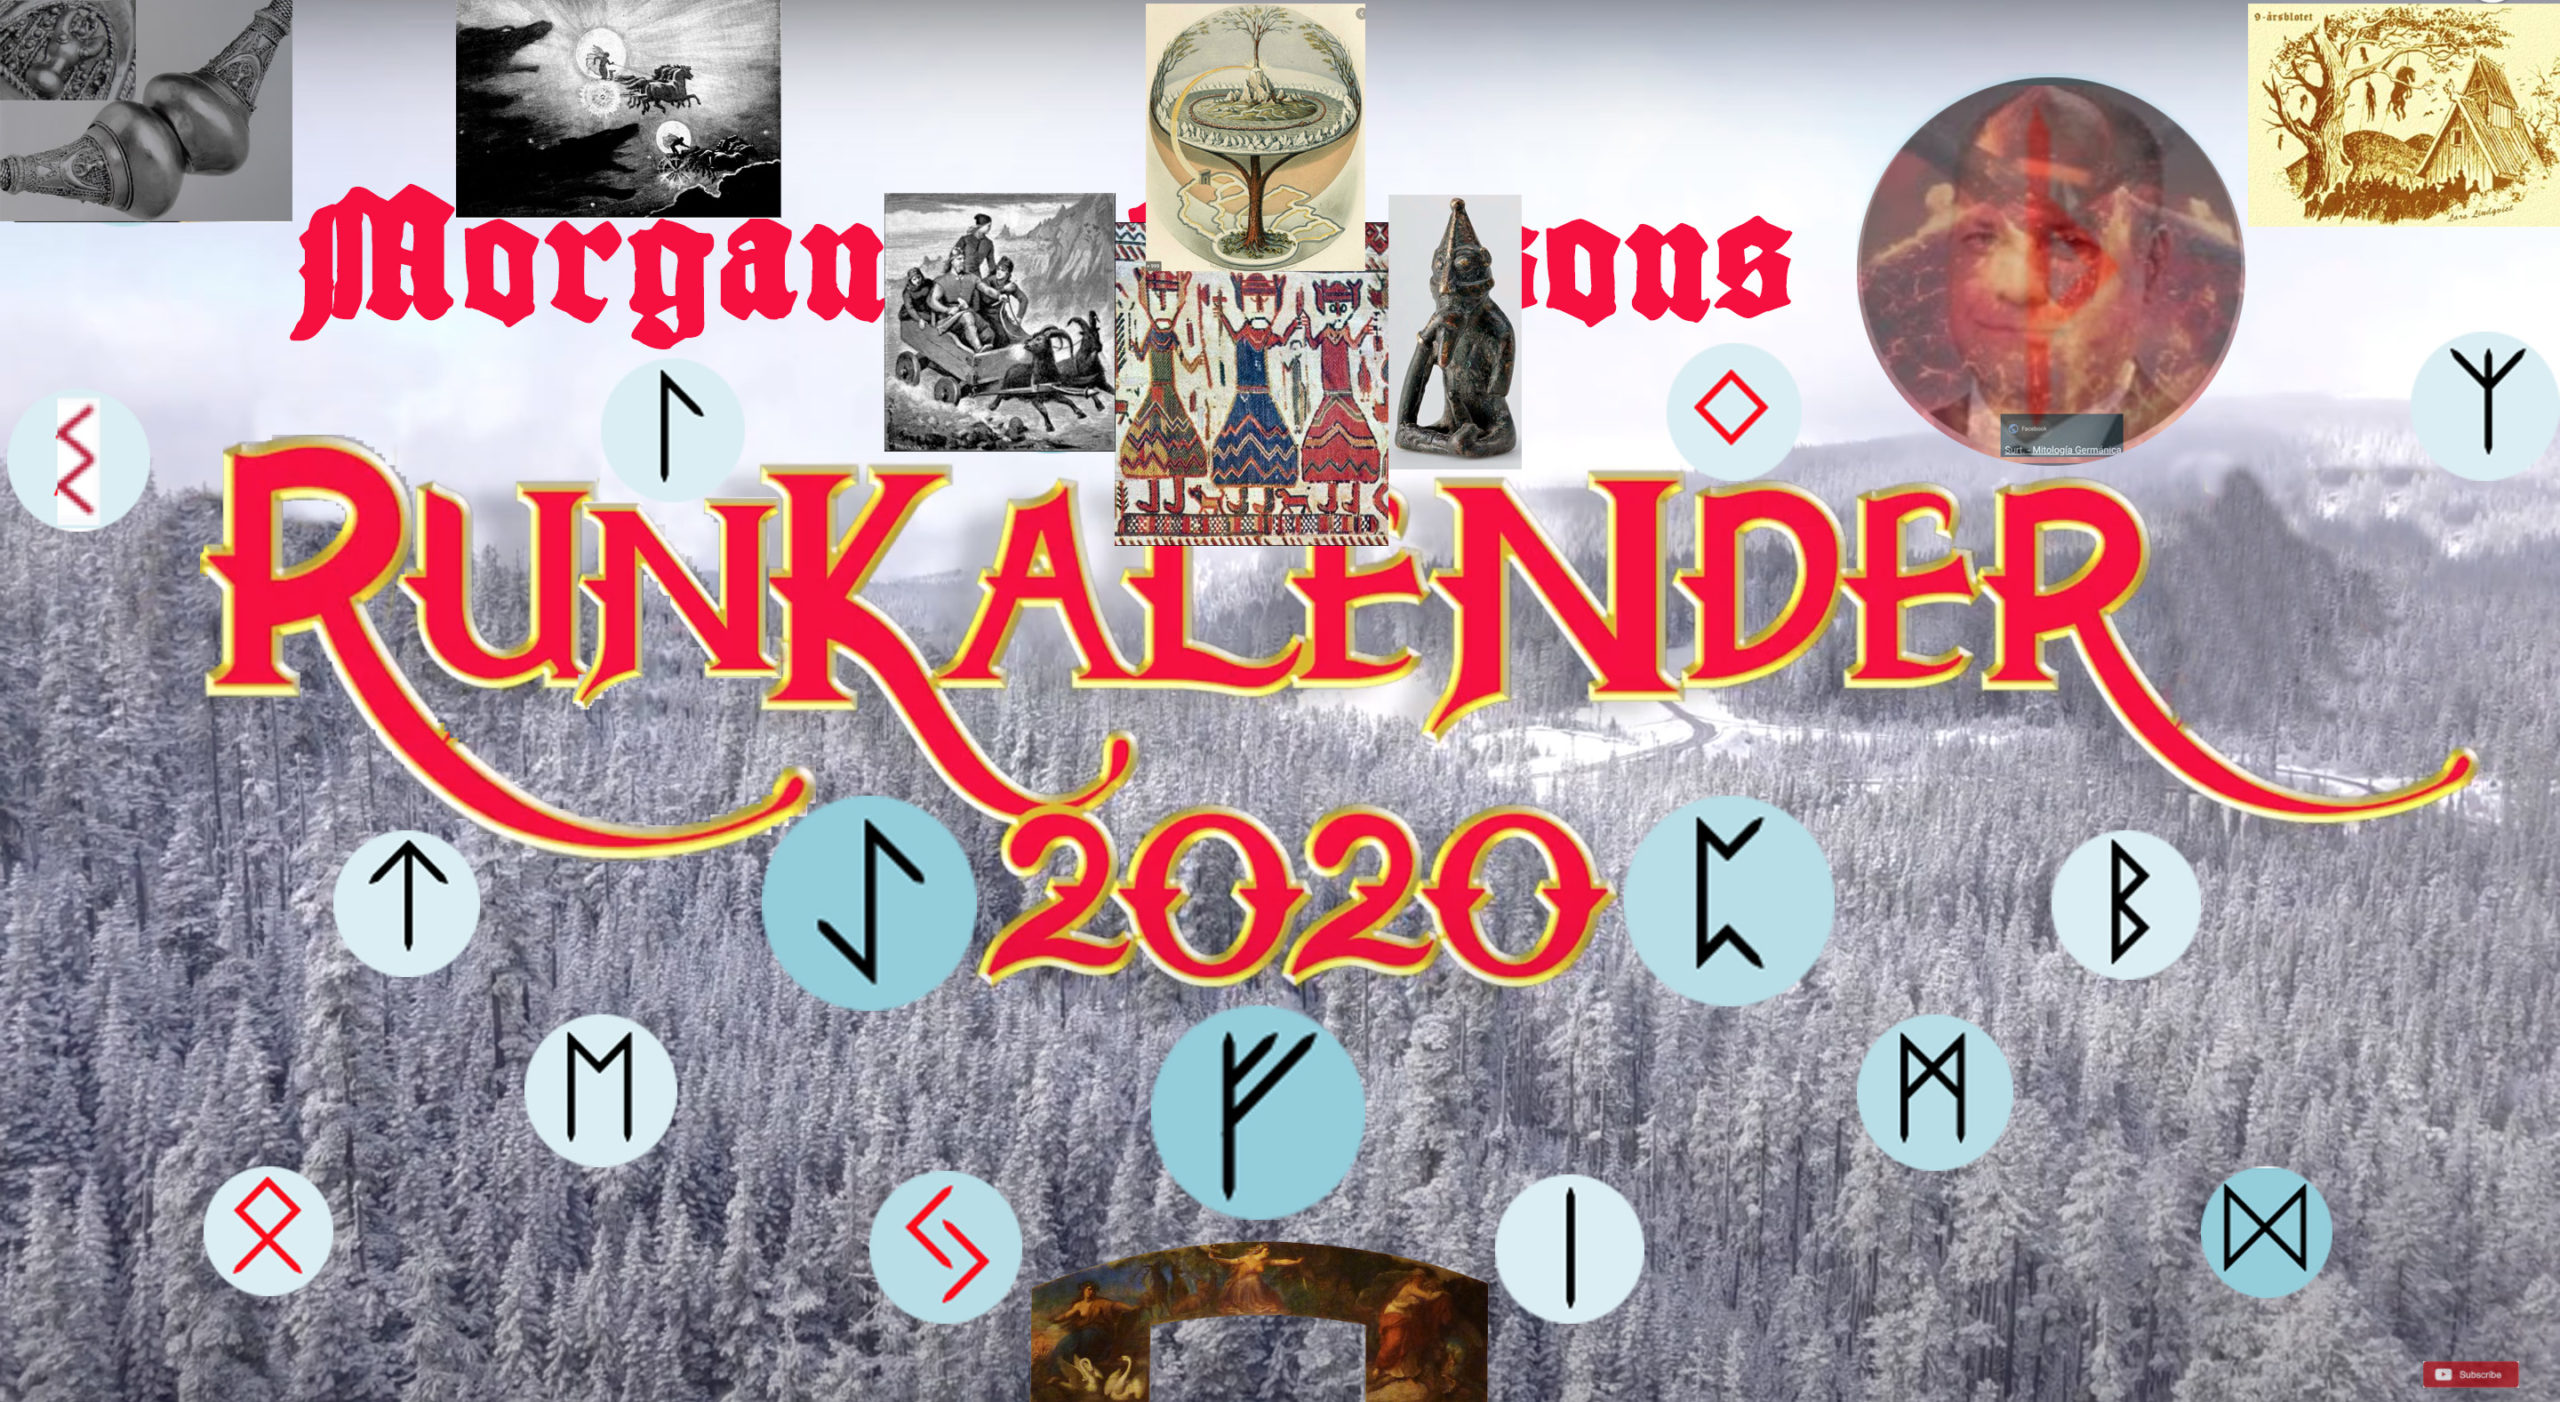 Runkalendern 10. Is